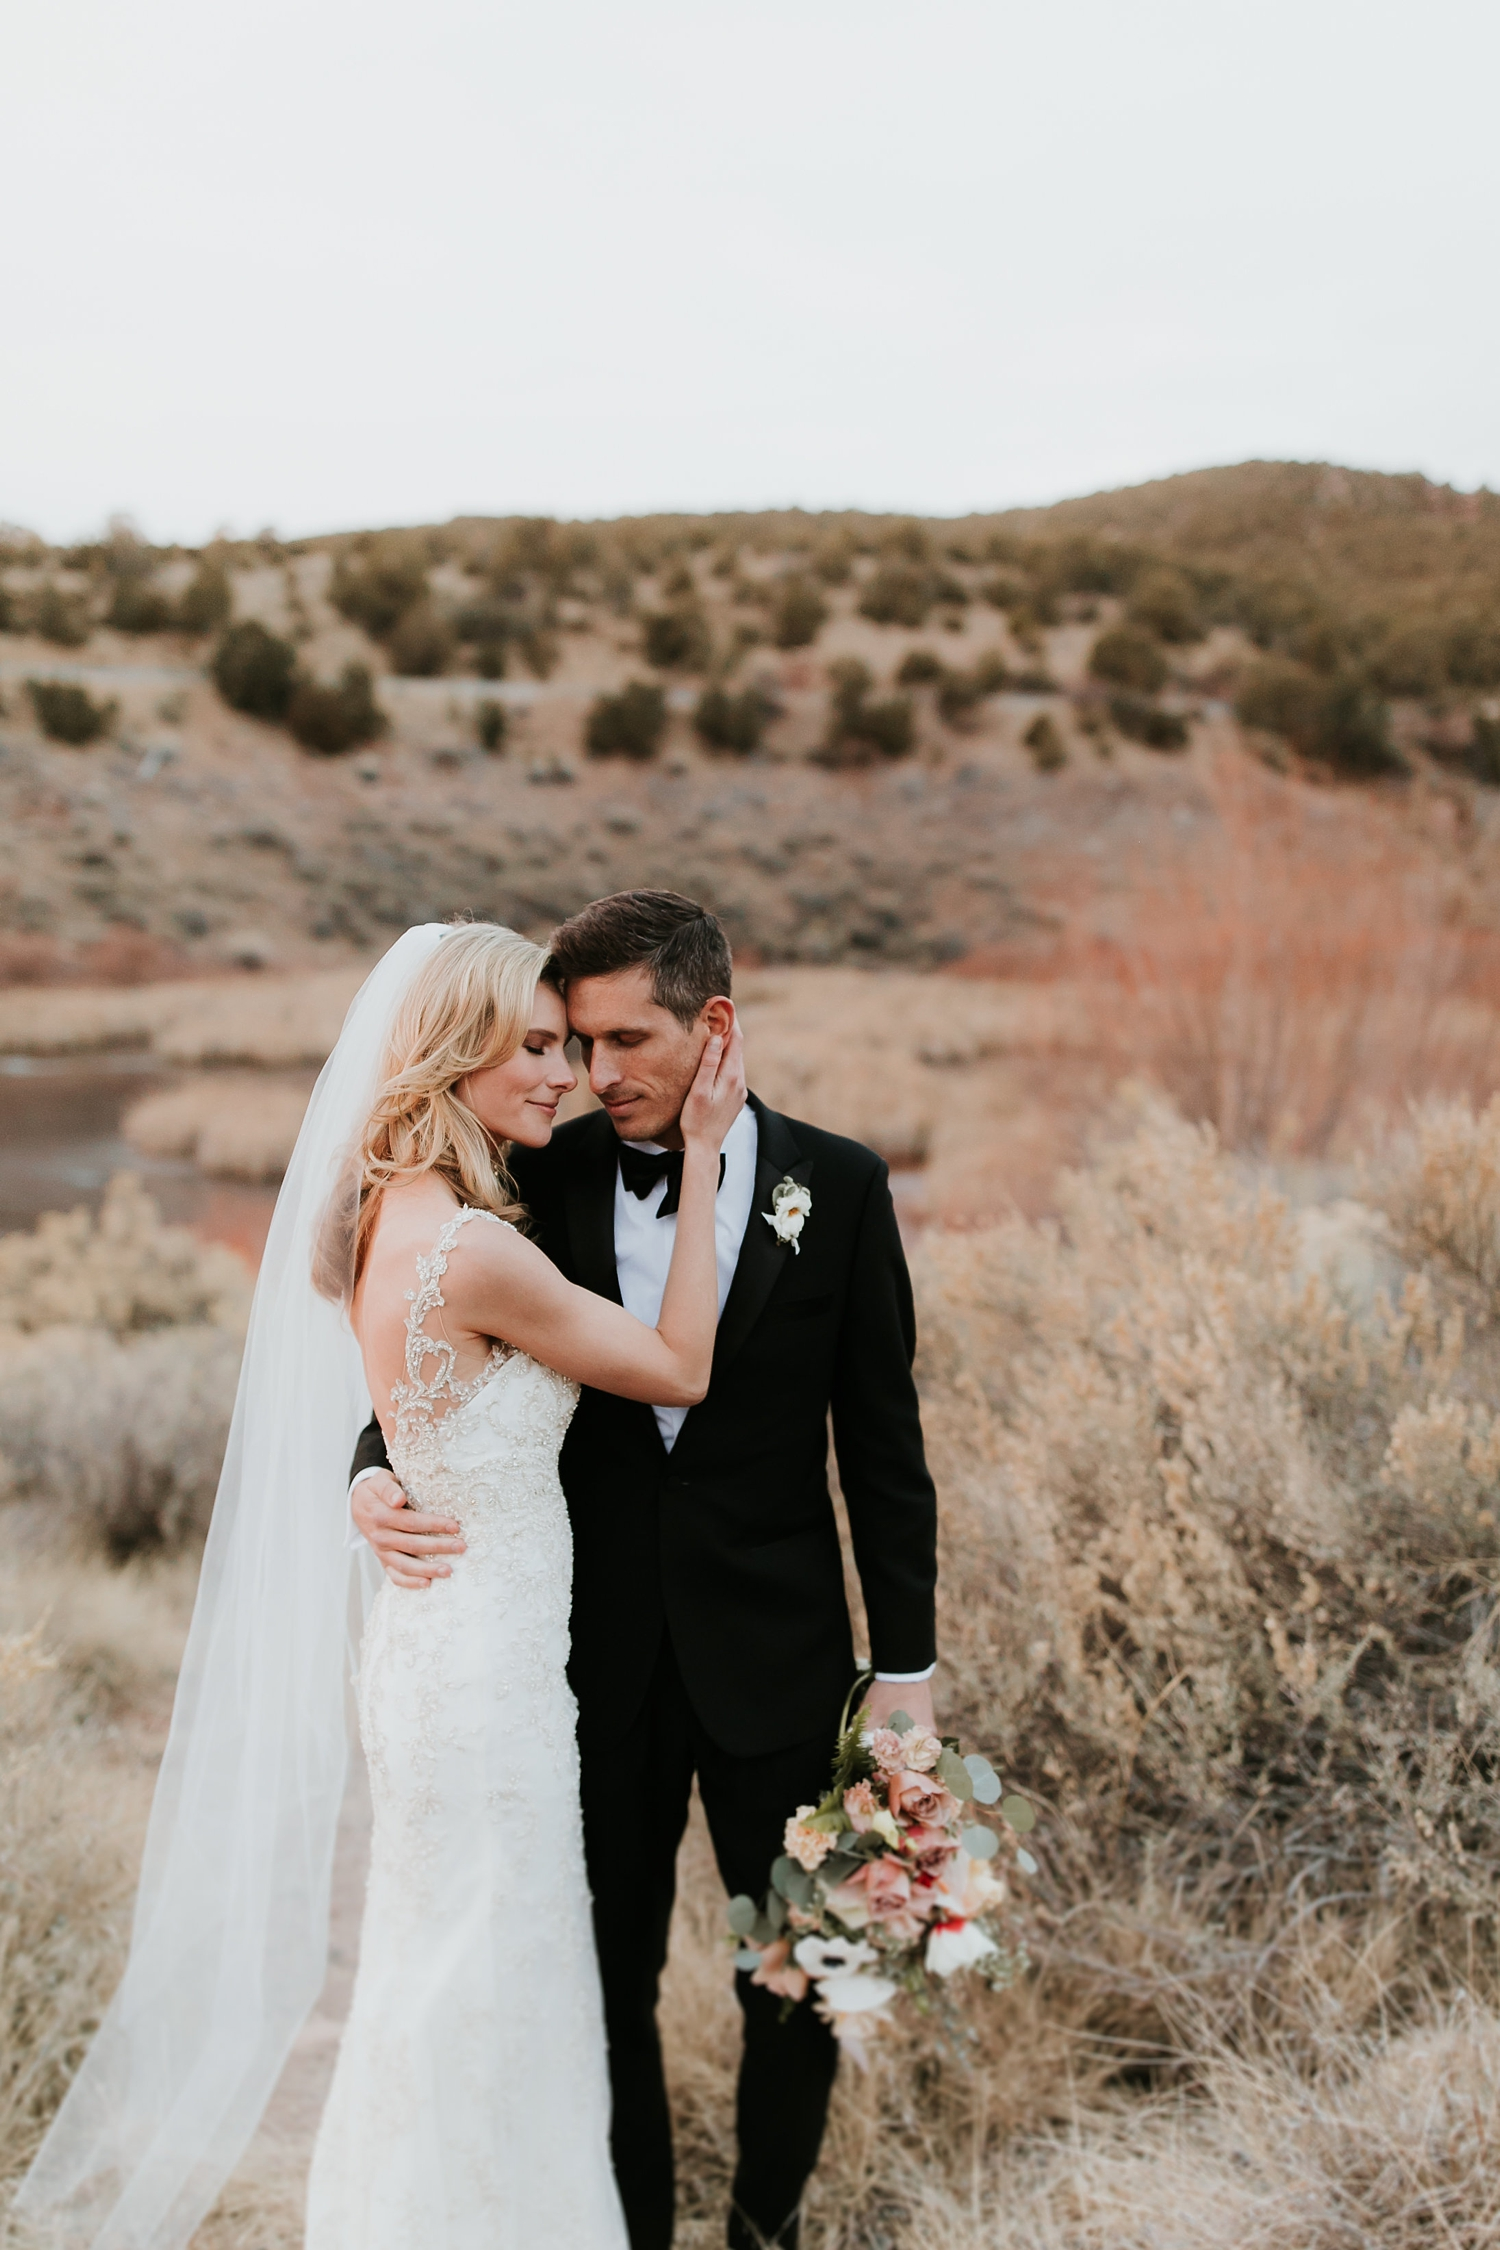 Alicia+lucia+photography+-+albuquerque+wedding+photographer+-+santa+fe+wedding+photography+-+new+mexico+wedding+photographer+-+la+fonda+wedding+-+la+fonda+winter+wedding_0096.jpg